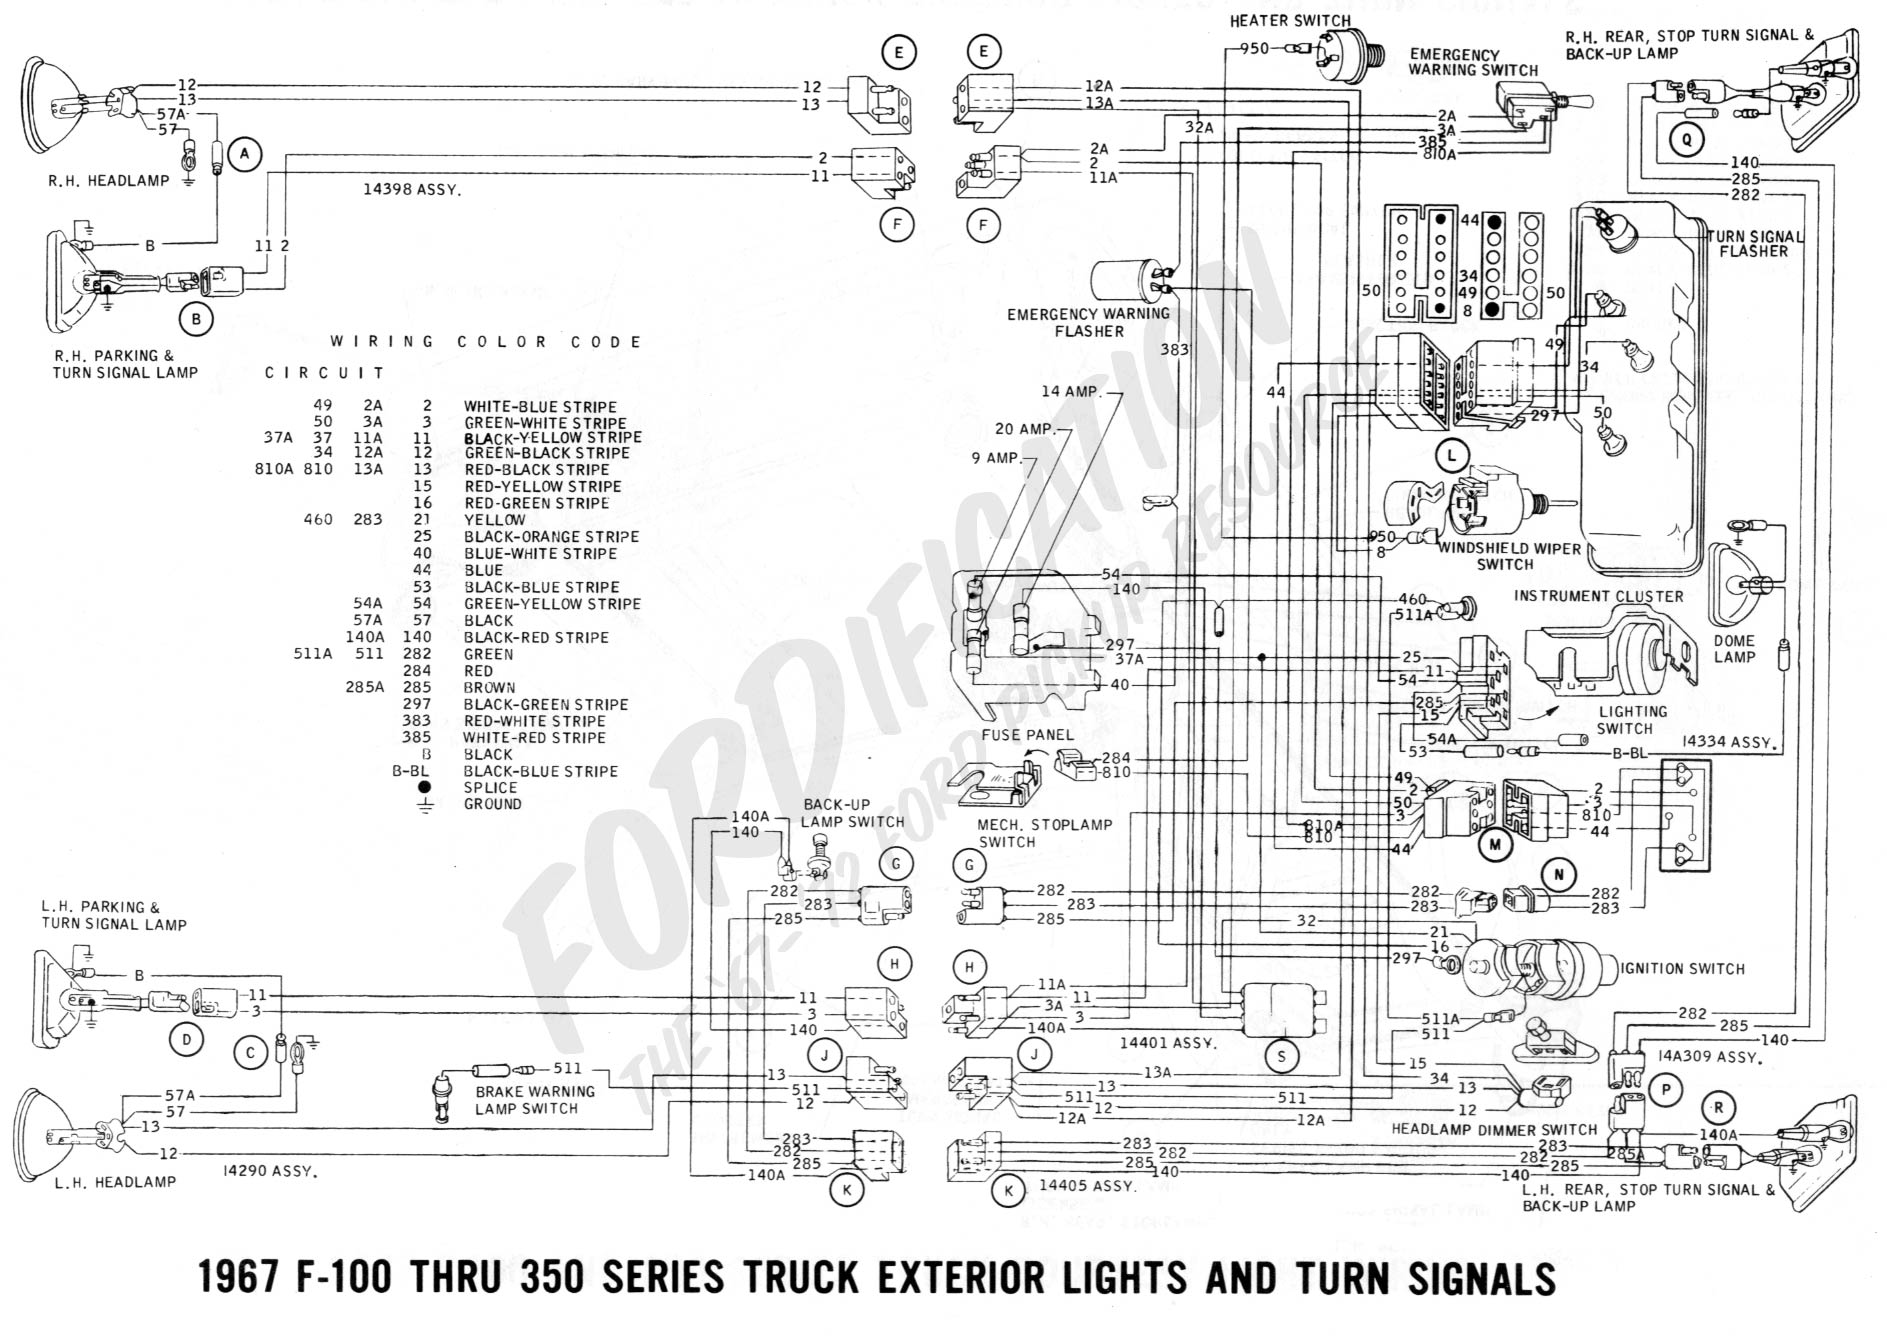 1976 Mustang Fuse Box Diagram Detailed Schematics 1999 F150 Identification Ford F100 Online 1994